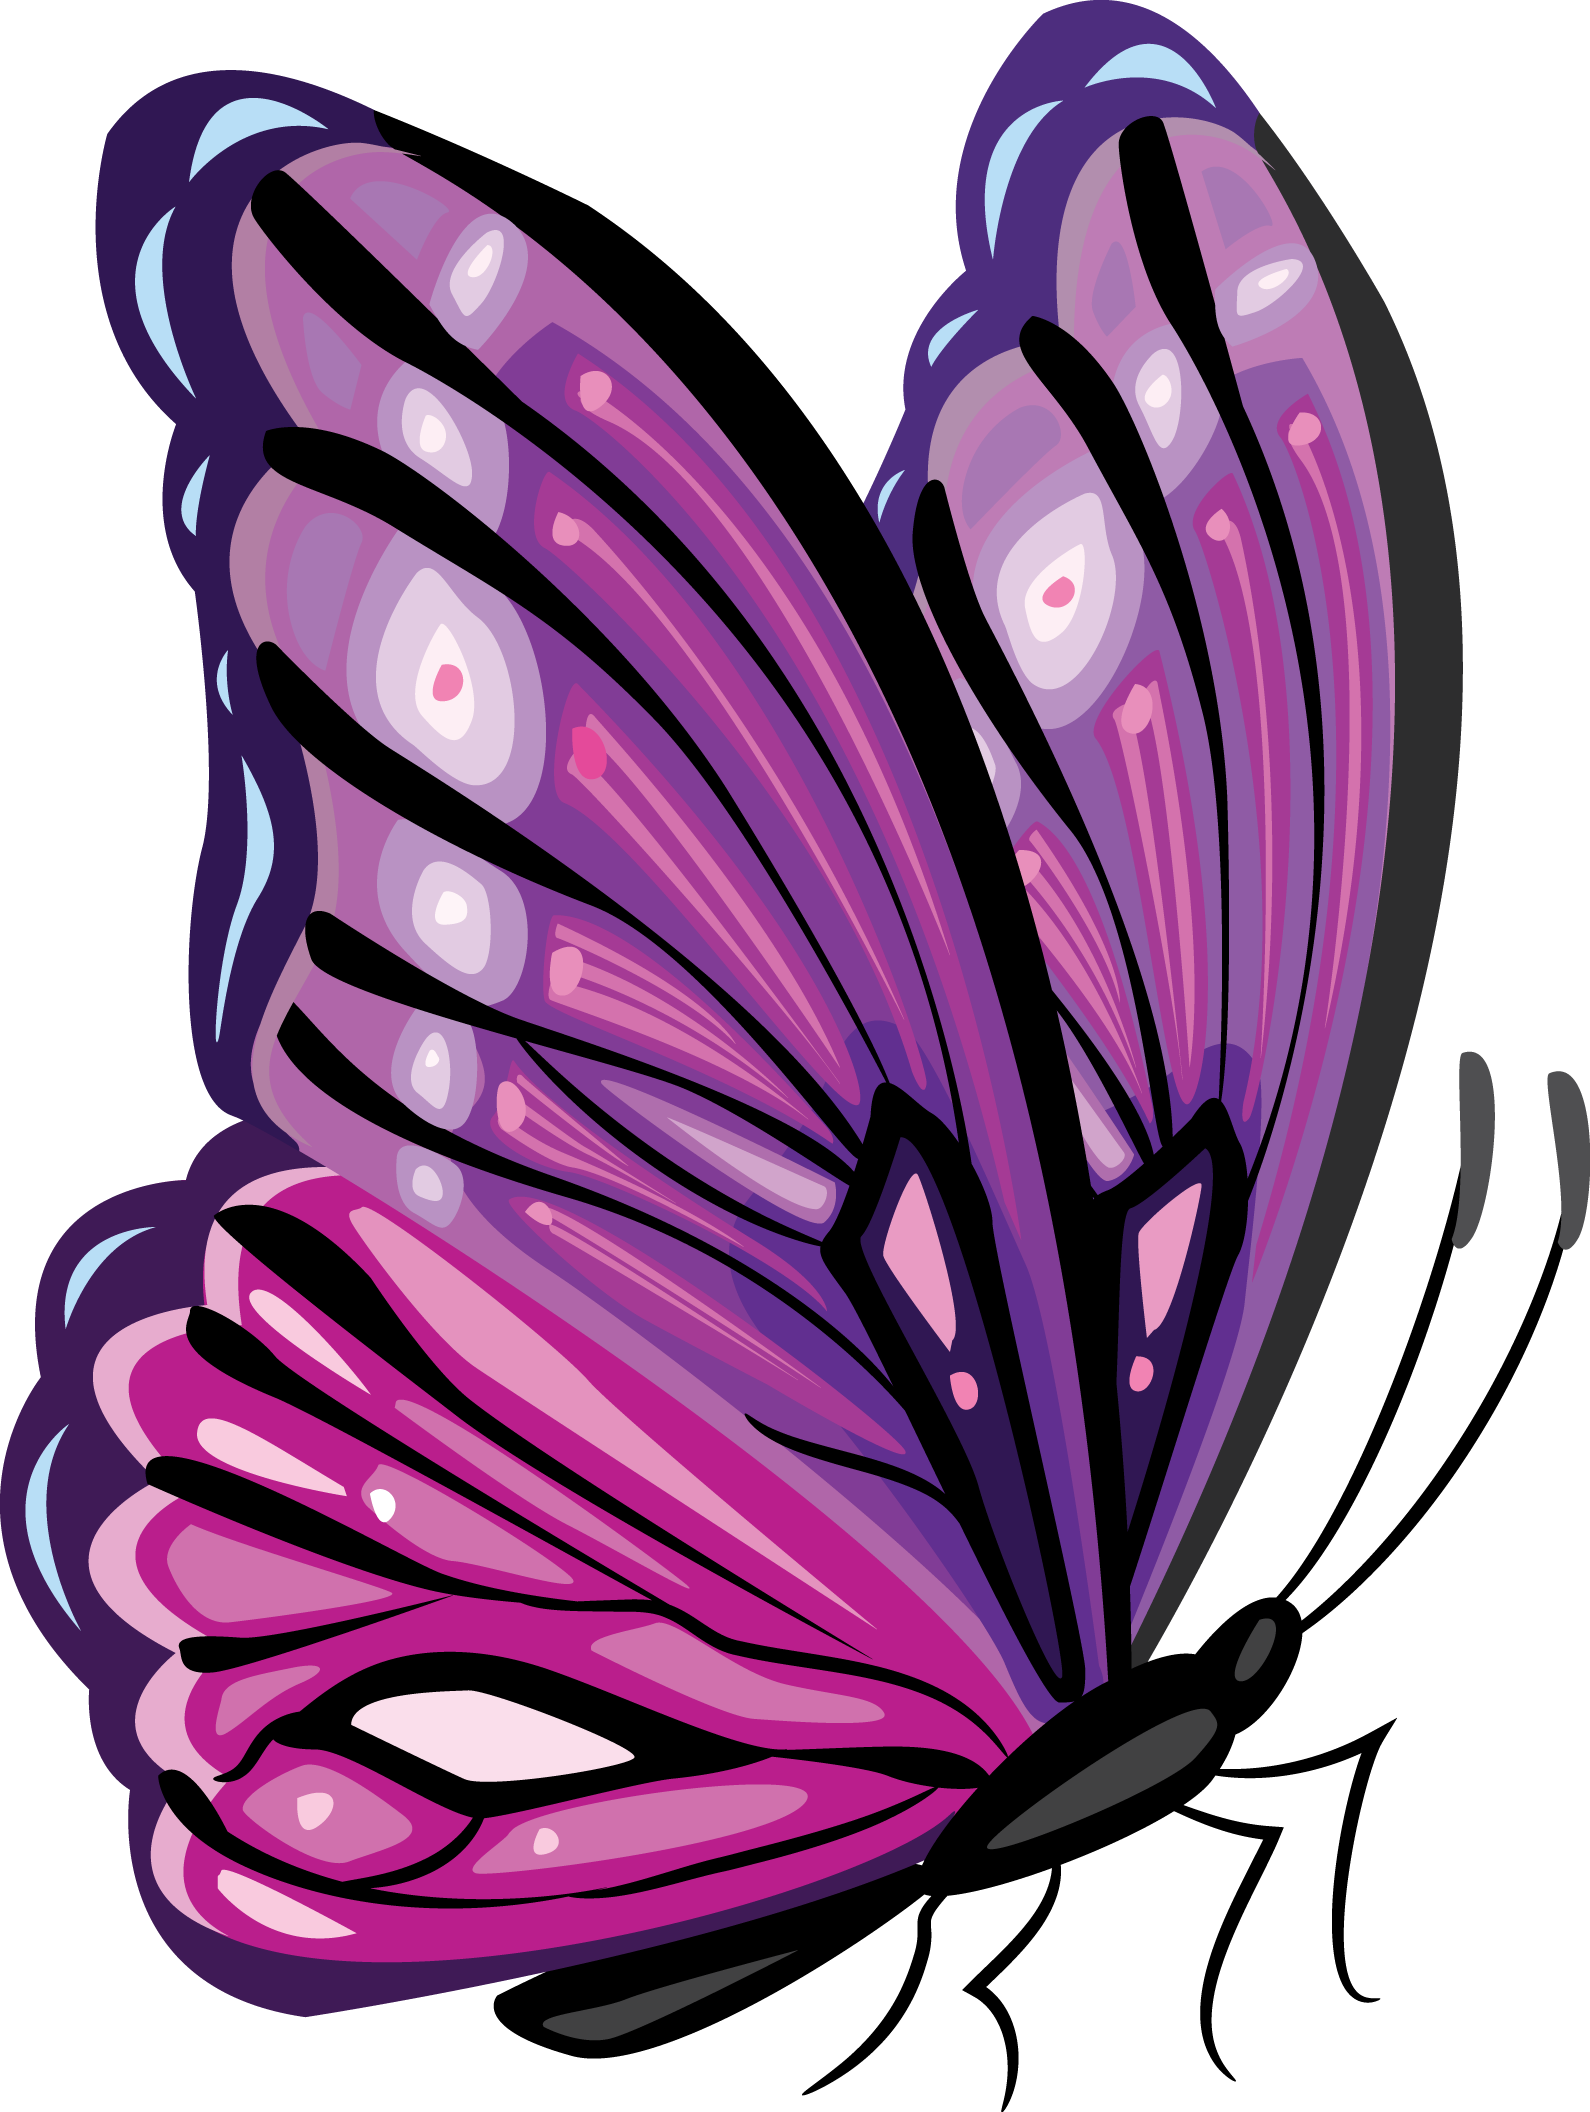 Clipart butterfly burgundy. Pin by ana maria